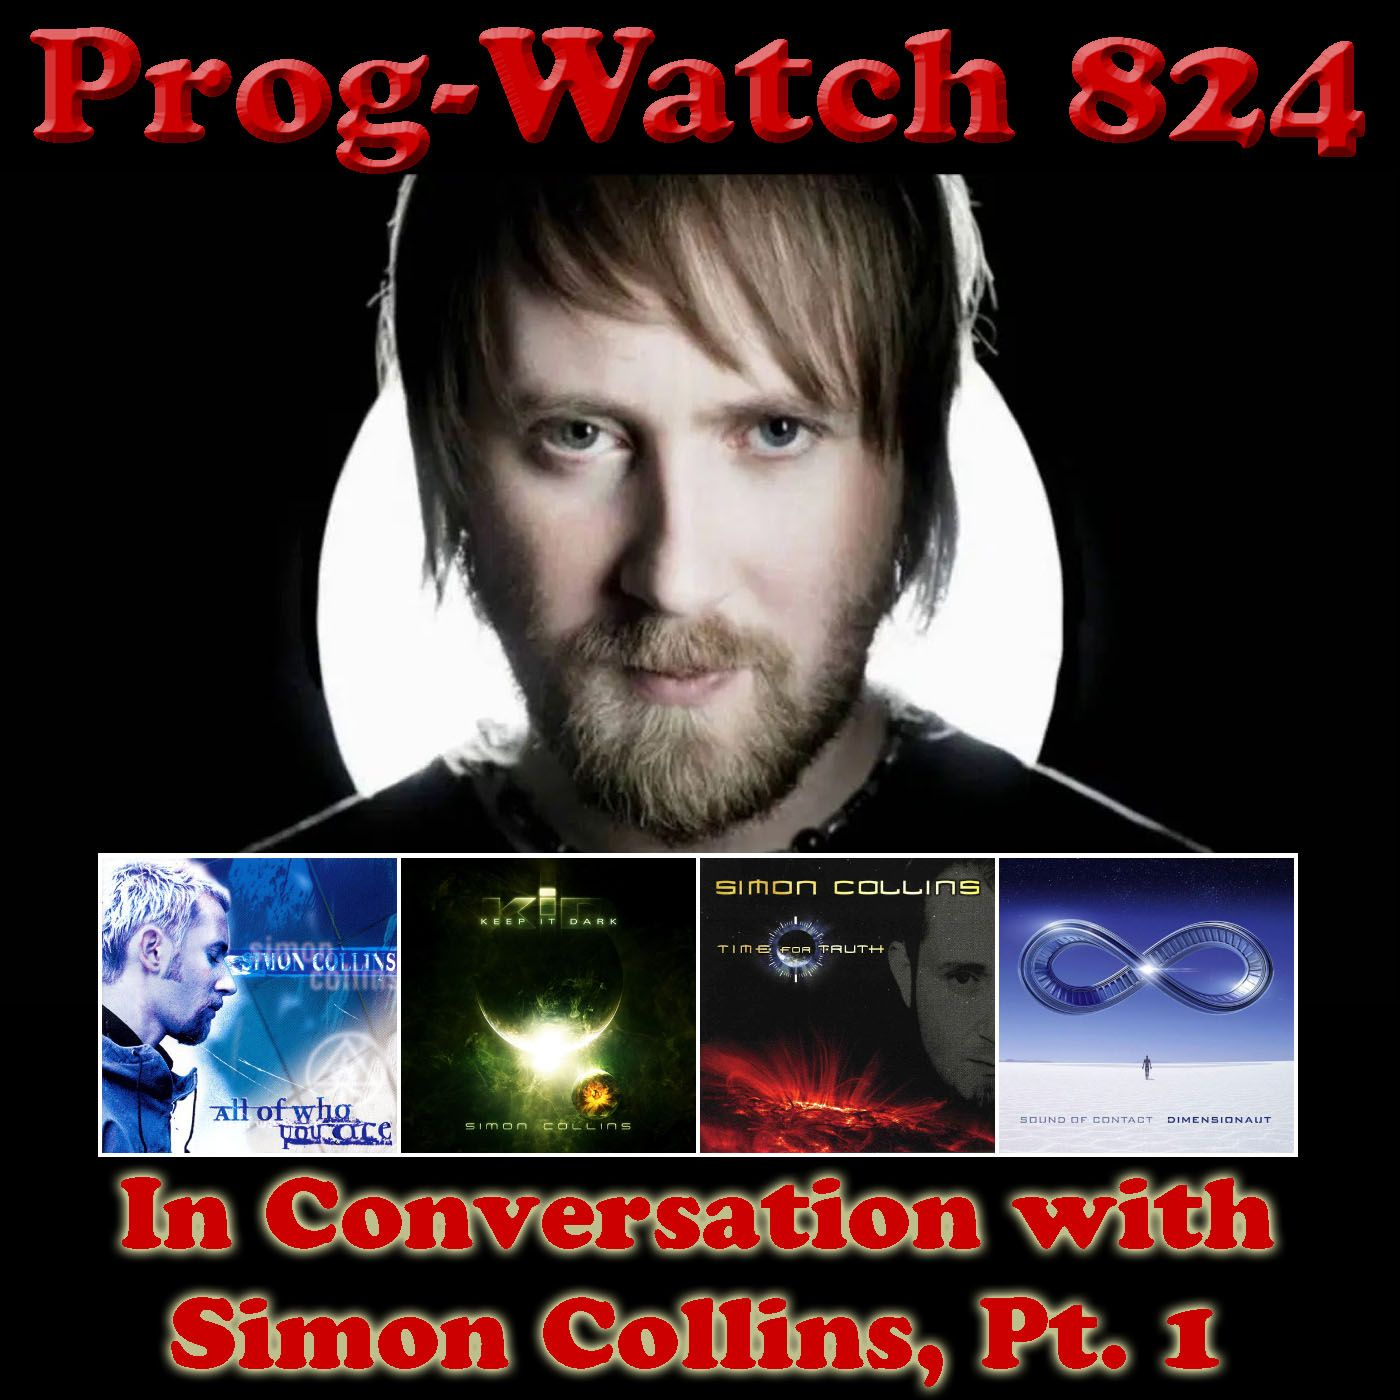 Episode 824 - In Conversation with Simon Collins, Pt. 1